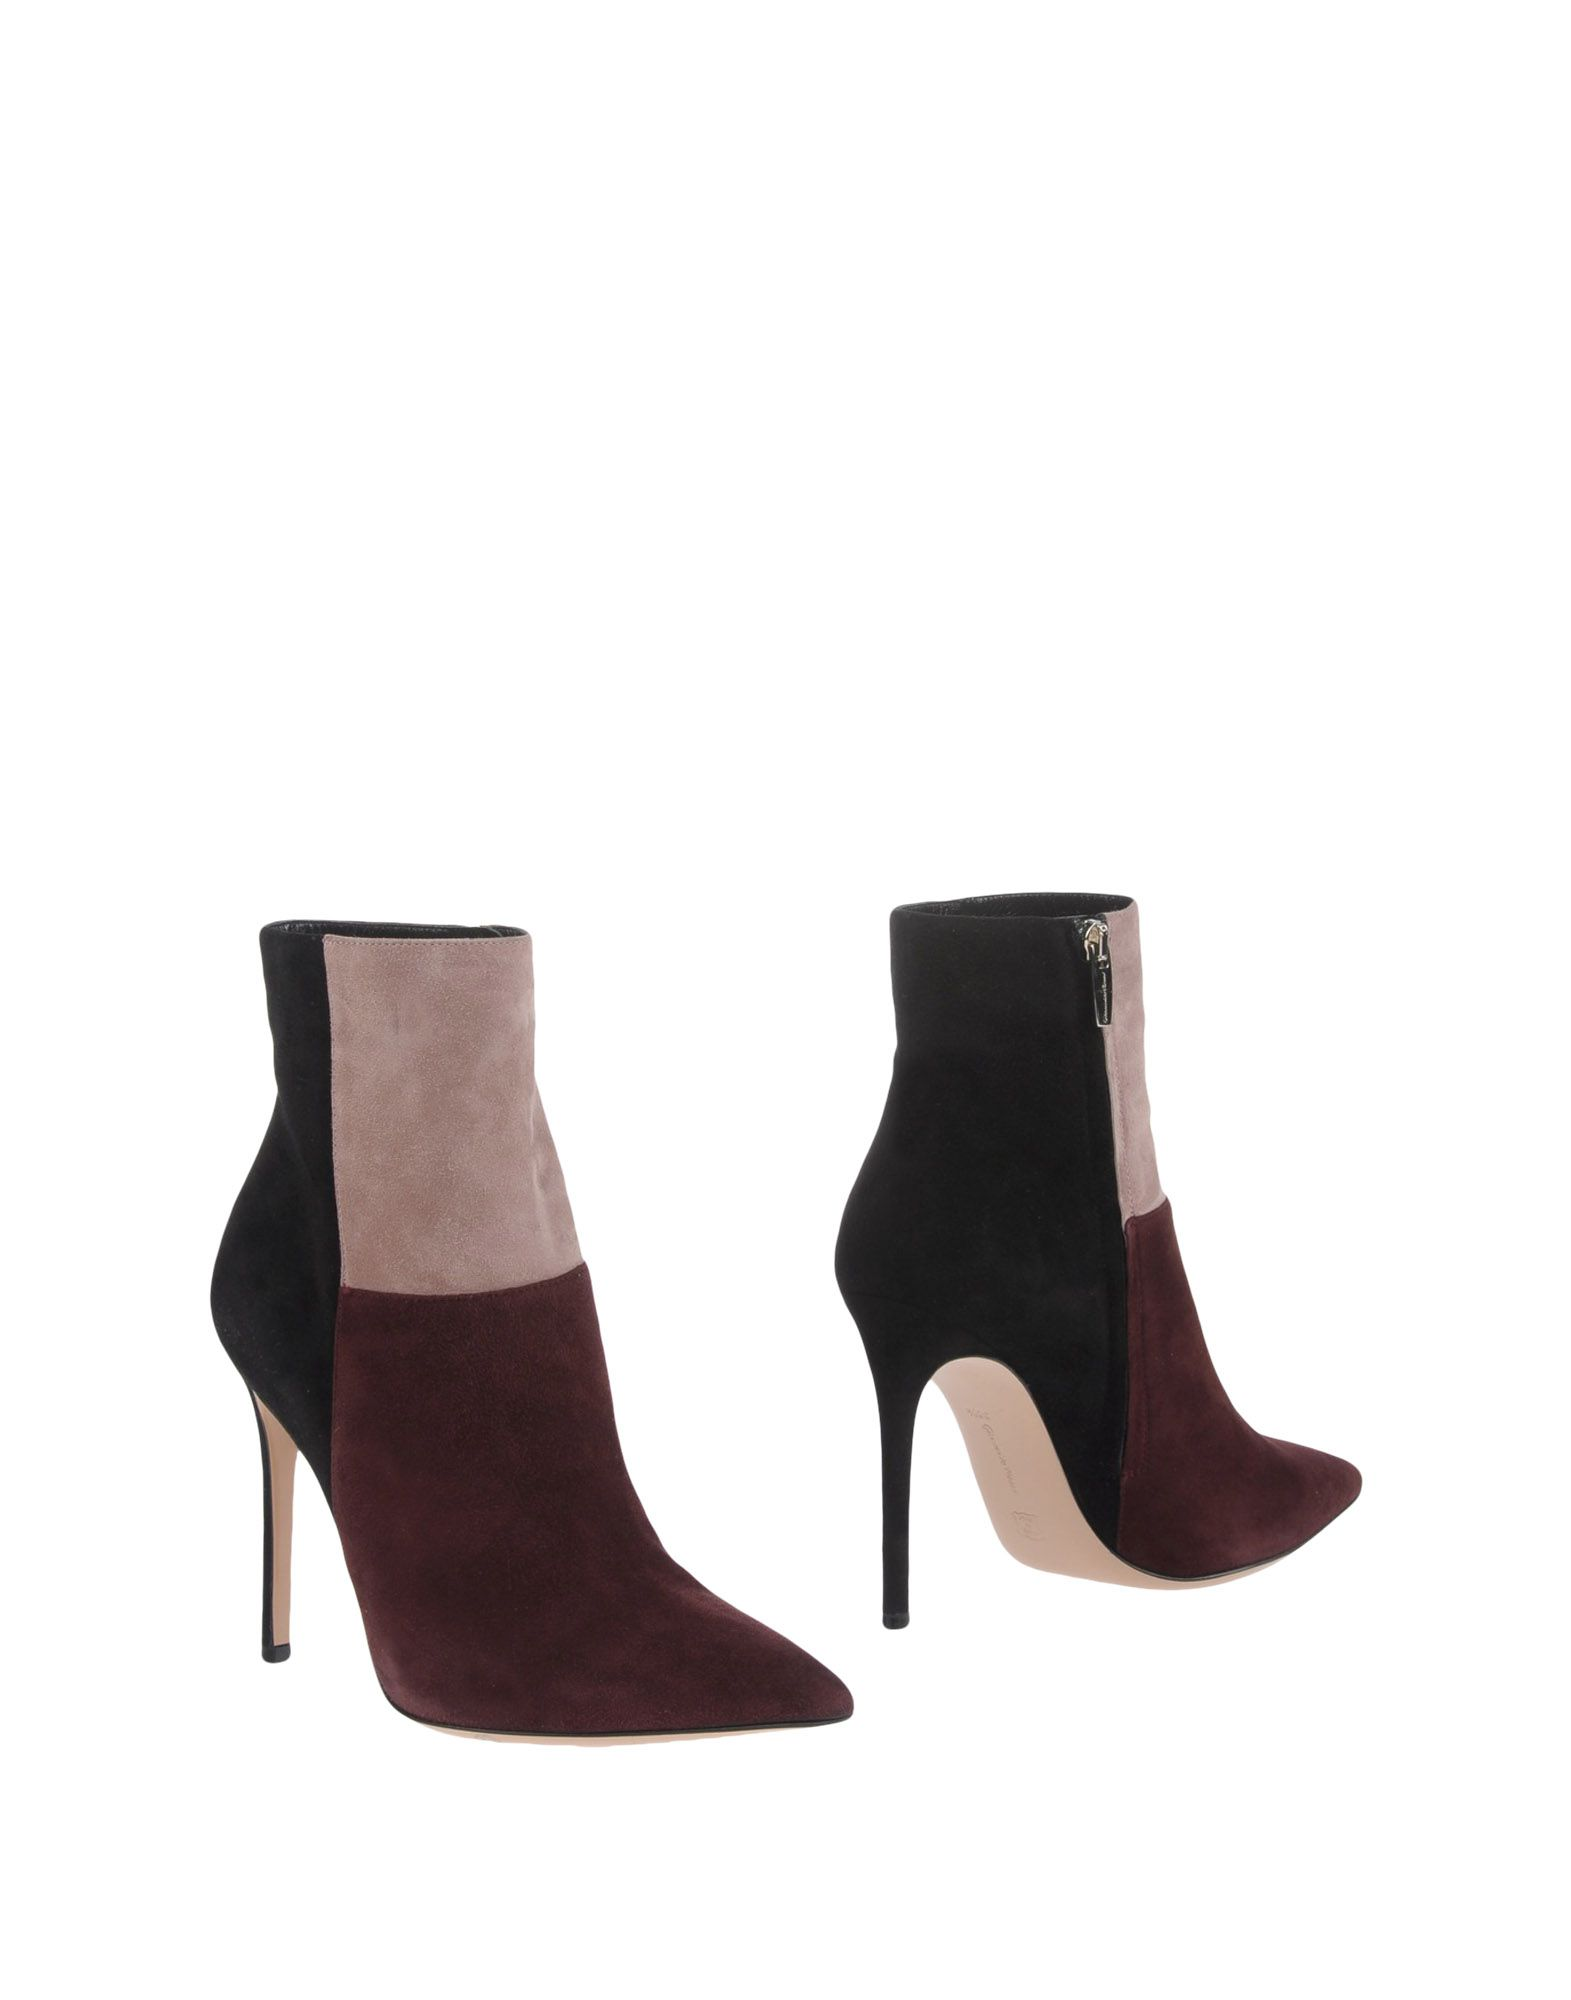 99ffdfbd8 Gianvito Rossi Ankle Boot - Women Gianvito Rossi Ankle Boots online ...